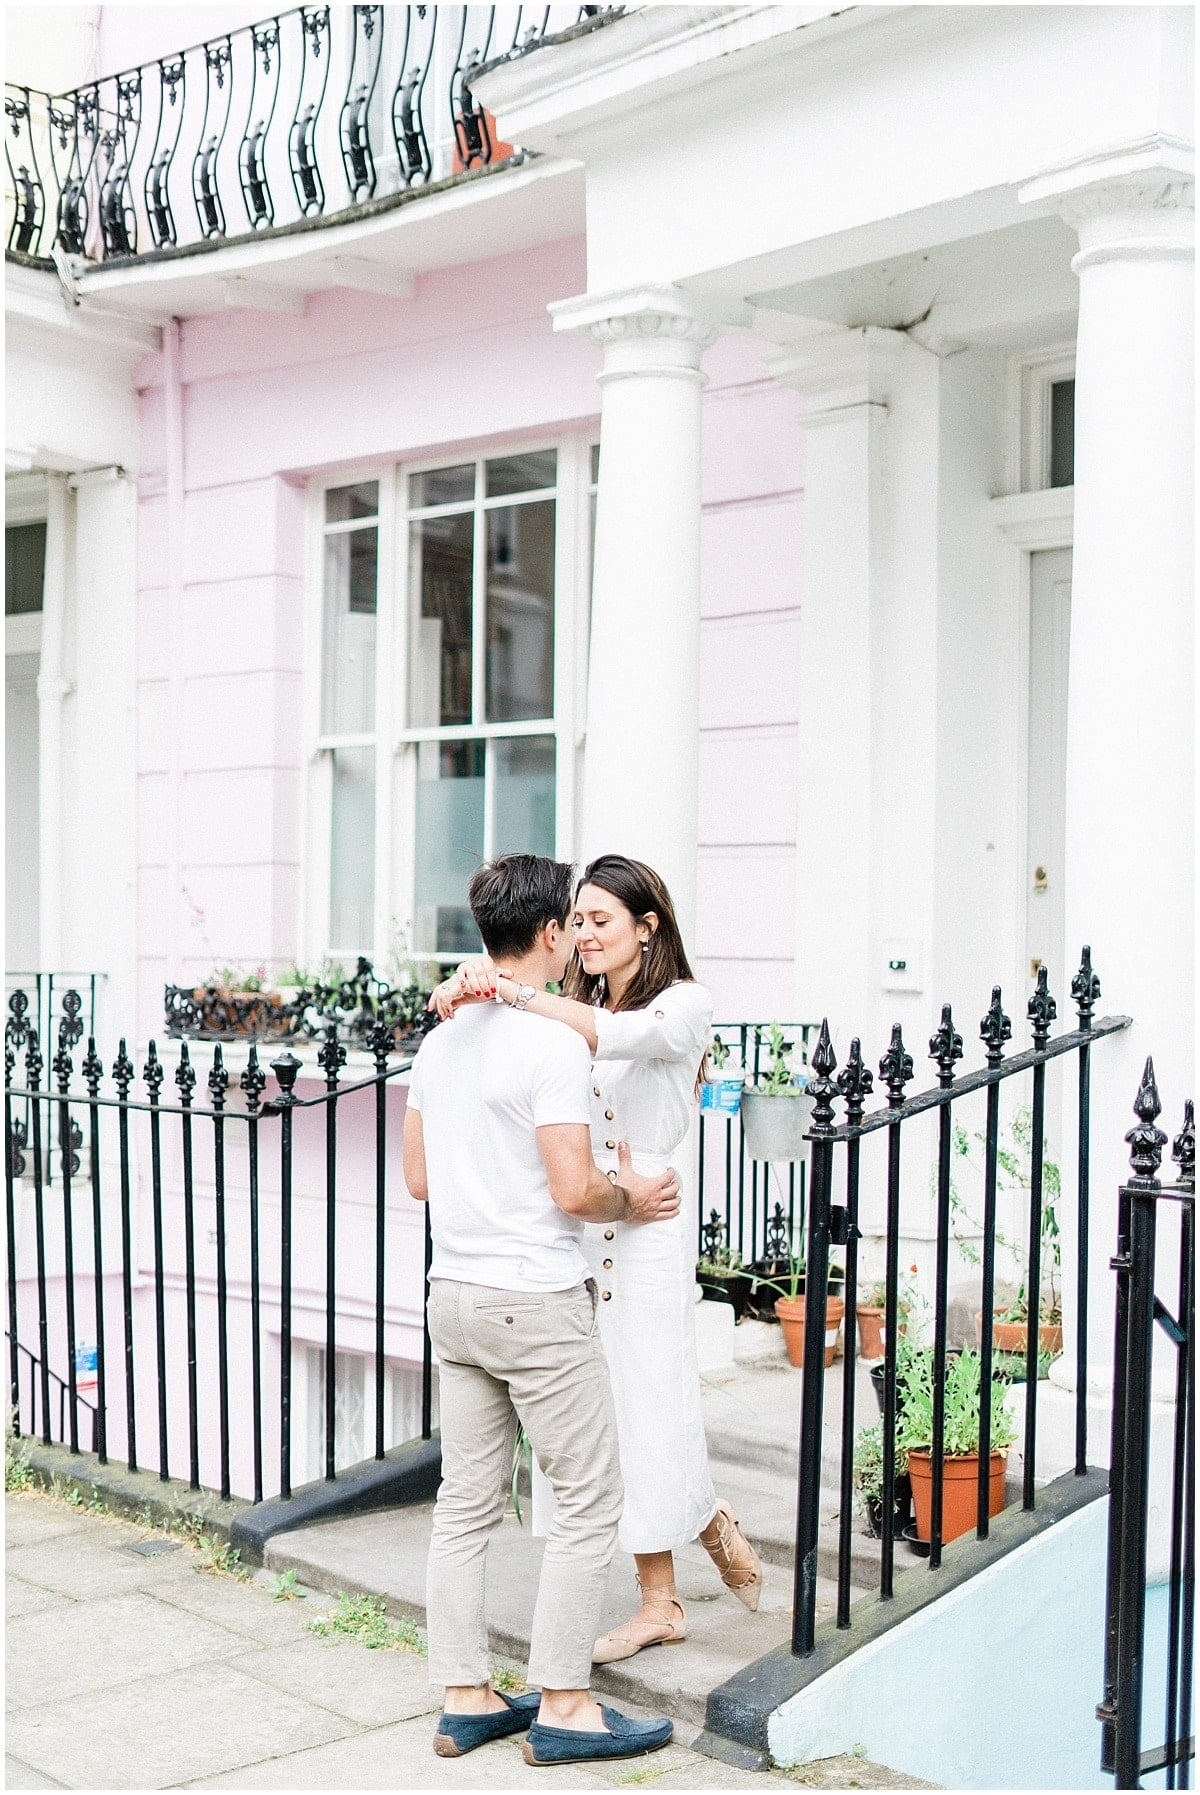 Christophe Serrano destination wedding photographer primerose hill london18